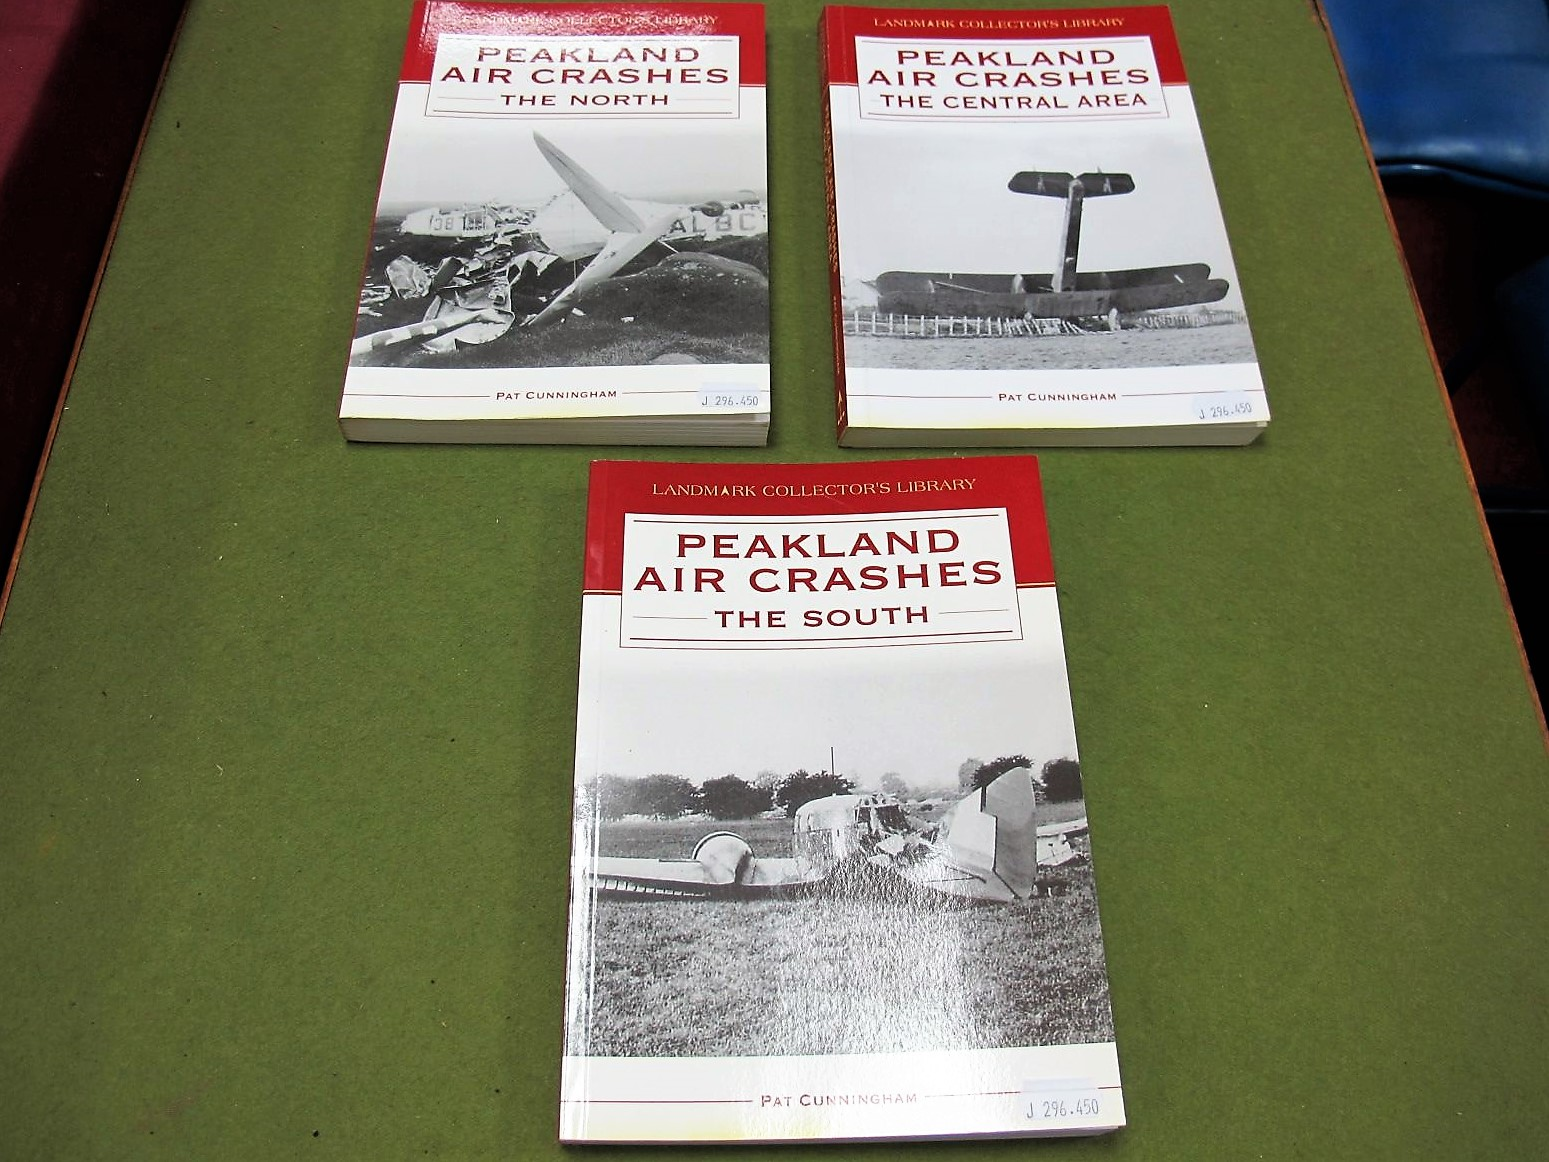 Lot 44 - Peakland Air Crashes by Pat Cunningham, three volumes in paperwork format, The North, The South, The